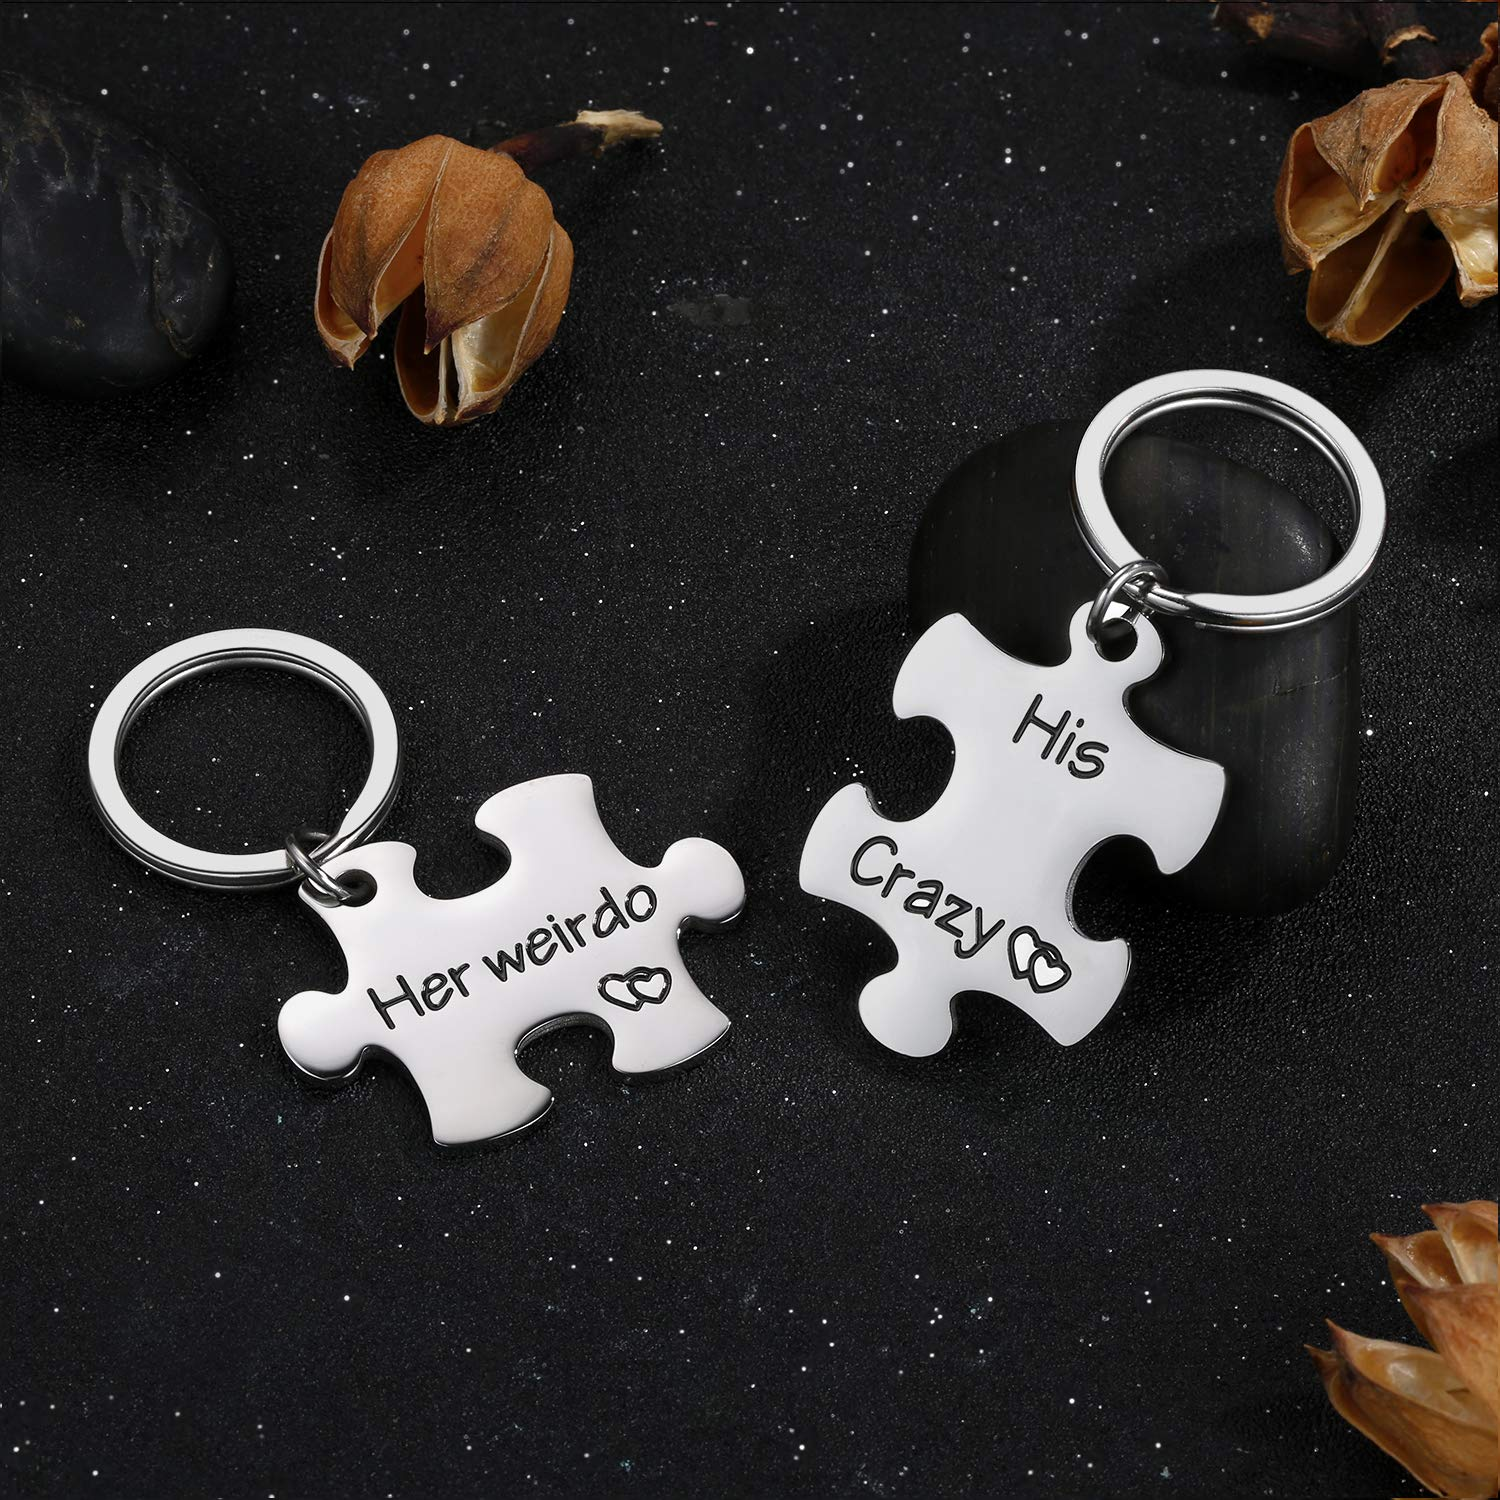 Engraved Jewelry Valentine/'s Day Birthday Anniversary Gifts for Boys Girls by Vallgox Set of 2 Key Ring for Girlfriend Boyfriend Wife Husband Women Men His Crazy Her Weirdo Couple Keychain Gifts